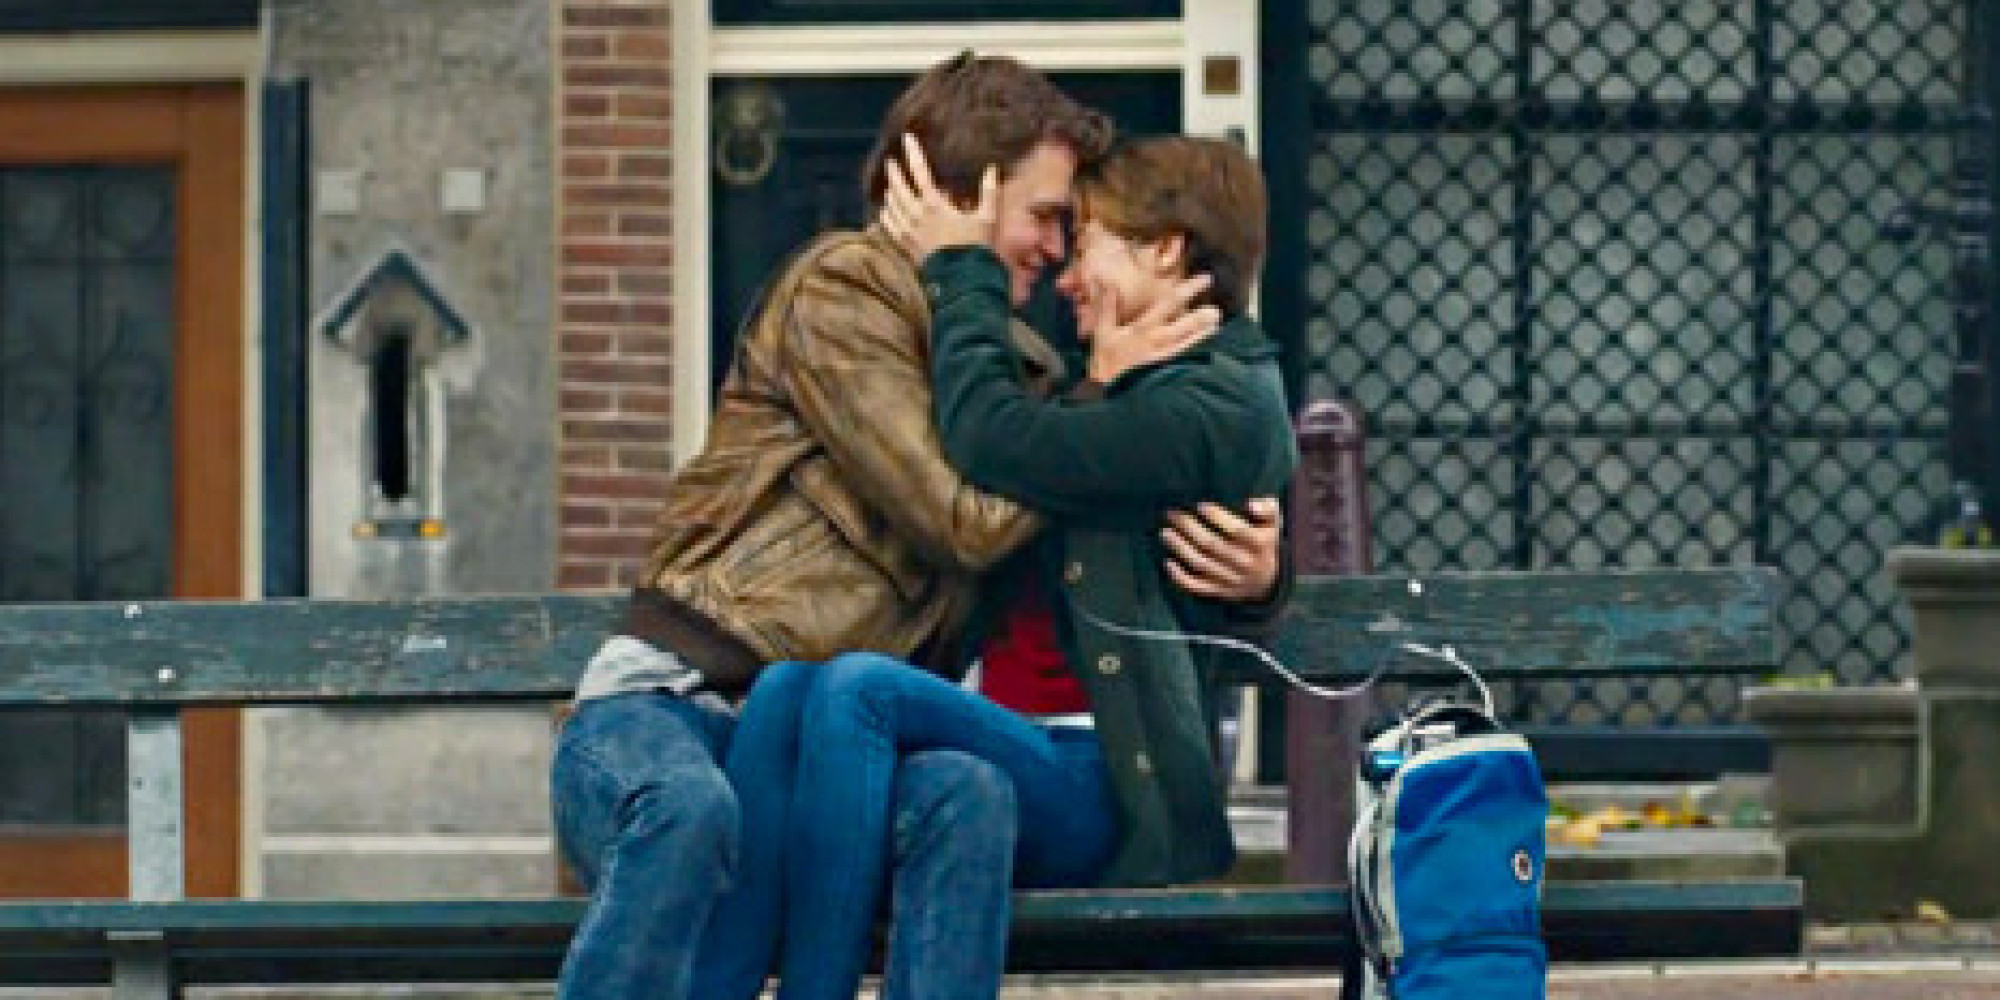 Fault in our stars actors dating